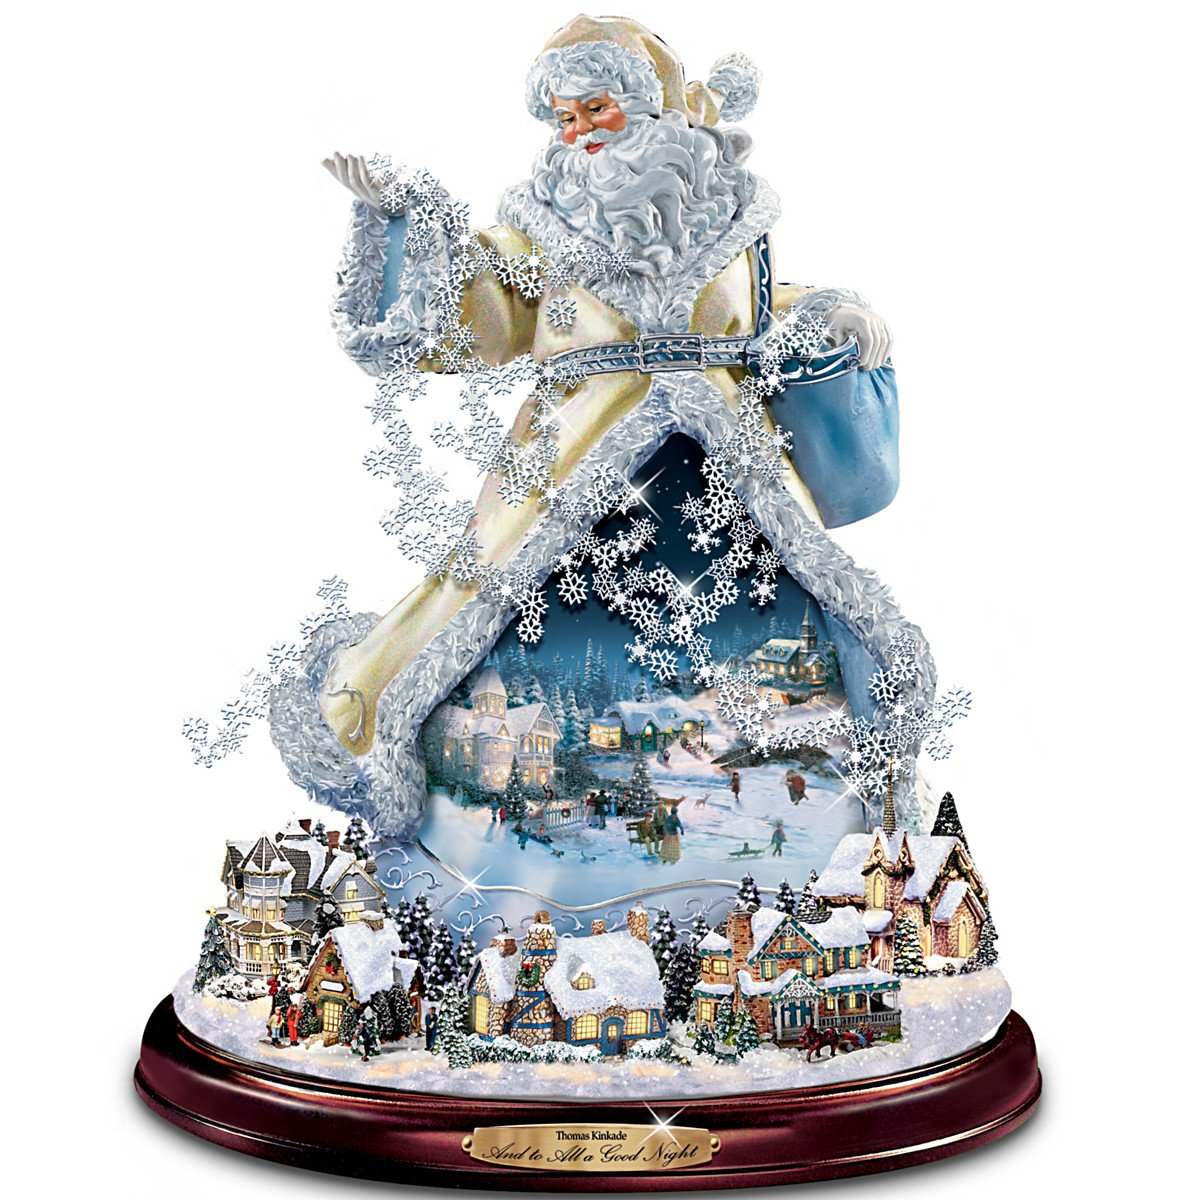 Thomas Kinkade Moving Santa Claus Tabletop Figurine: And To All A Good Night by The Bradford Exchange